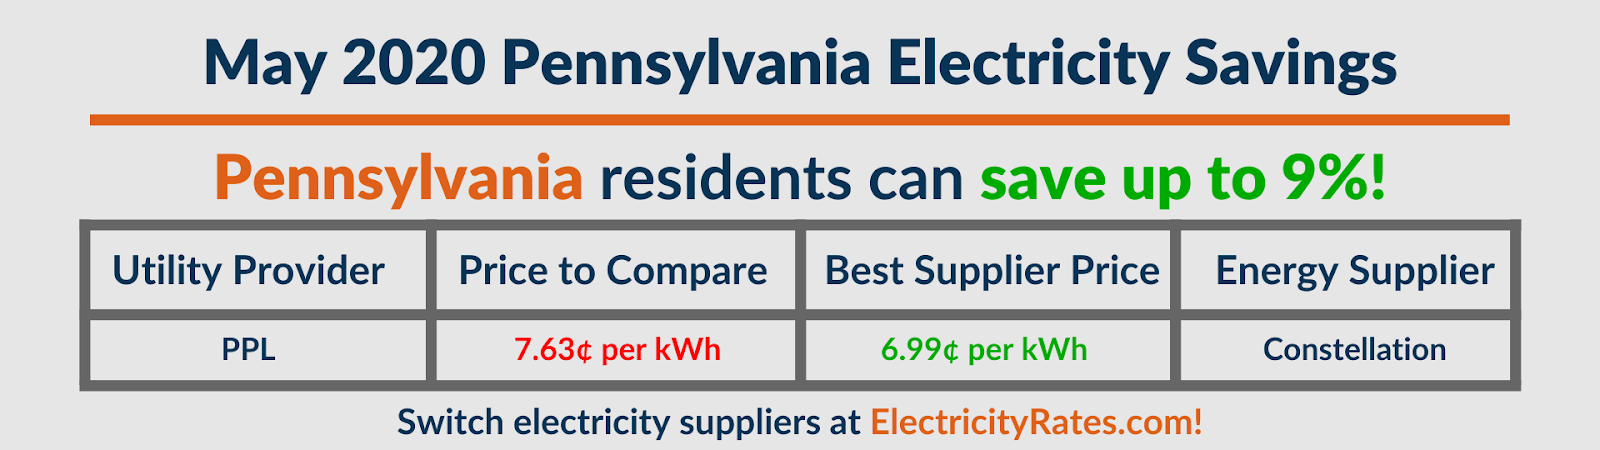 Graphic depicting May 2020 Pennsylvania savings by utility